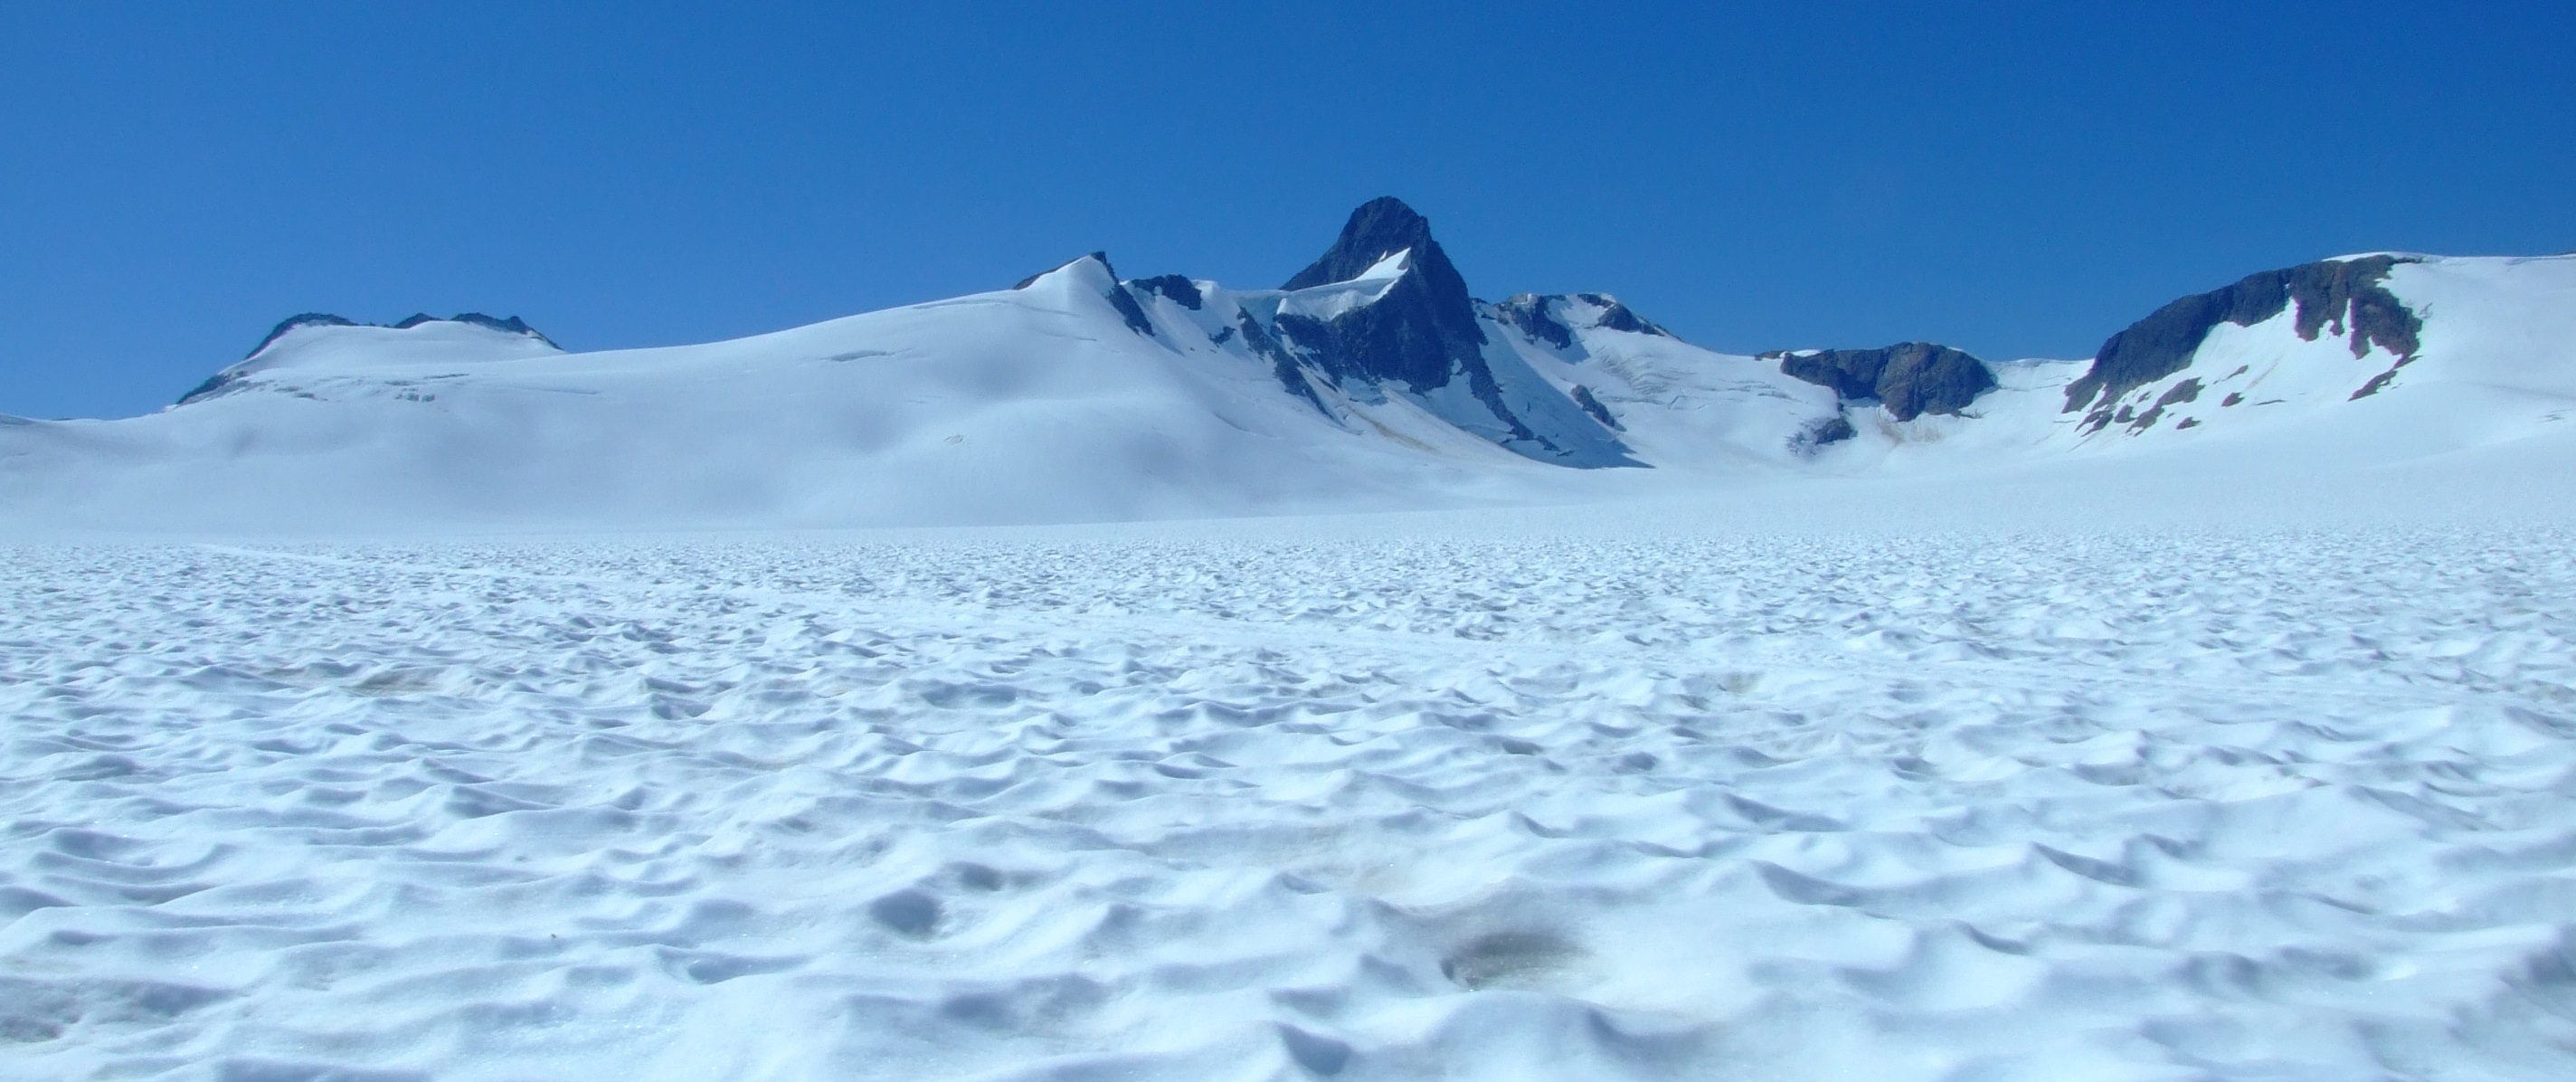 A view from a sled. The peak is Split Thumb (4,993 ft/1,522m) at the south-west extreme of the Middle Branch. On the other side is Lemon Creek Glacier